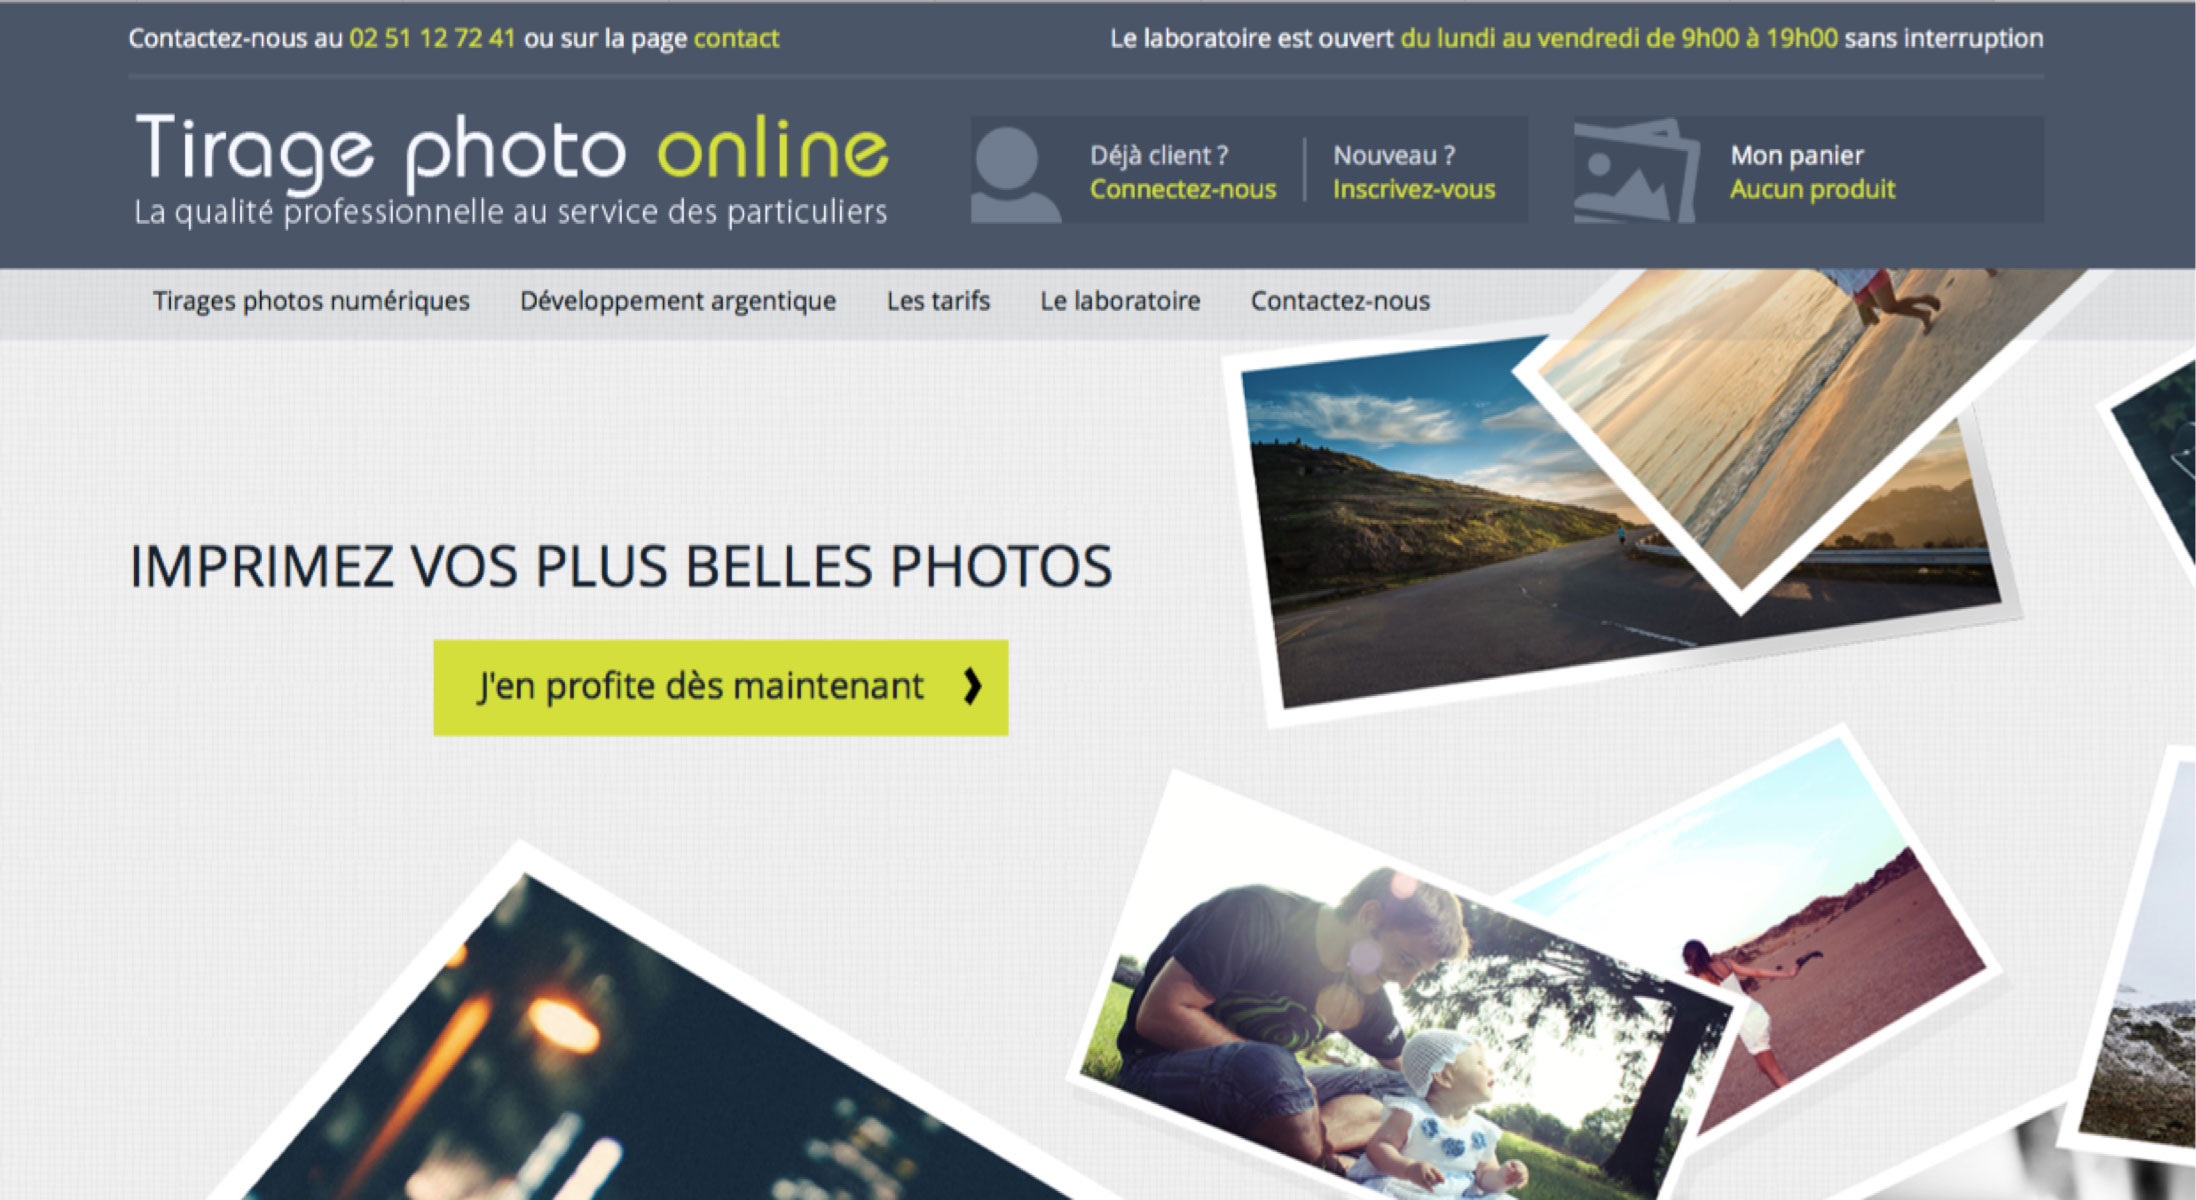 Tirage photo online